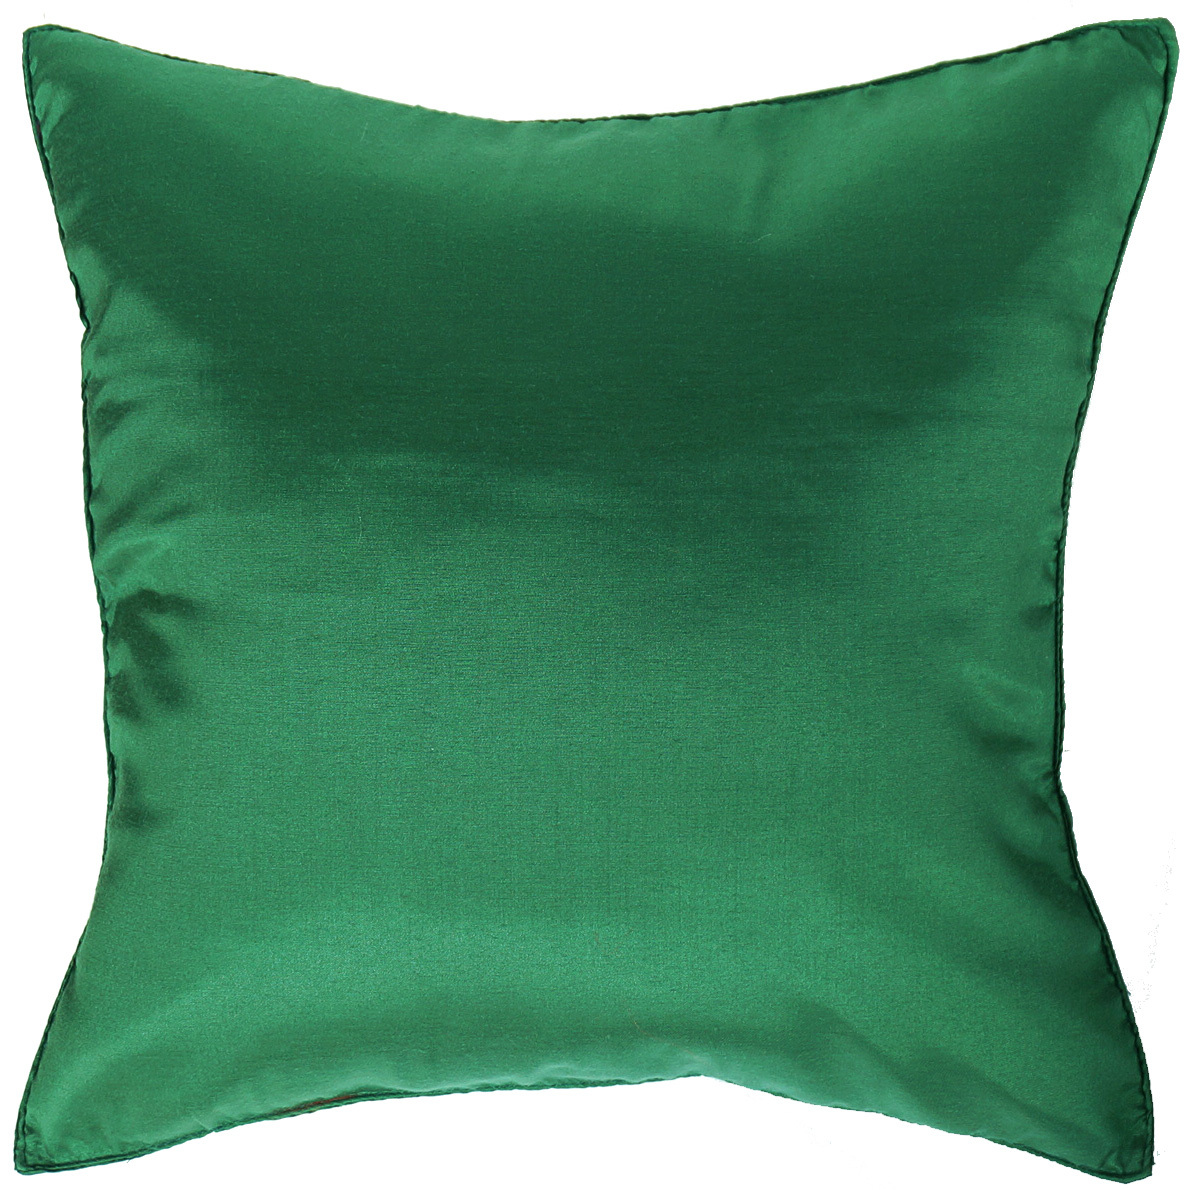 2 CHRISTMAS GREEN Silk THROW Decorative PILLOW COVERS for Sofa Bed Couch 16x16 - Pillows